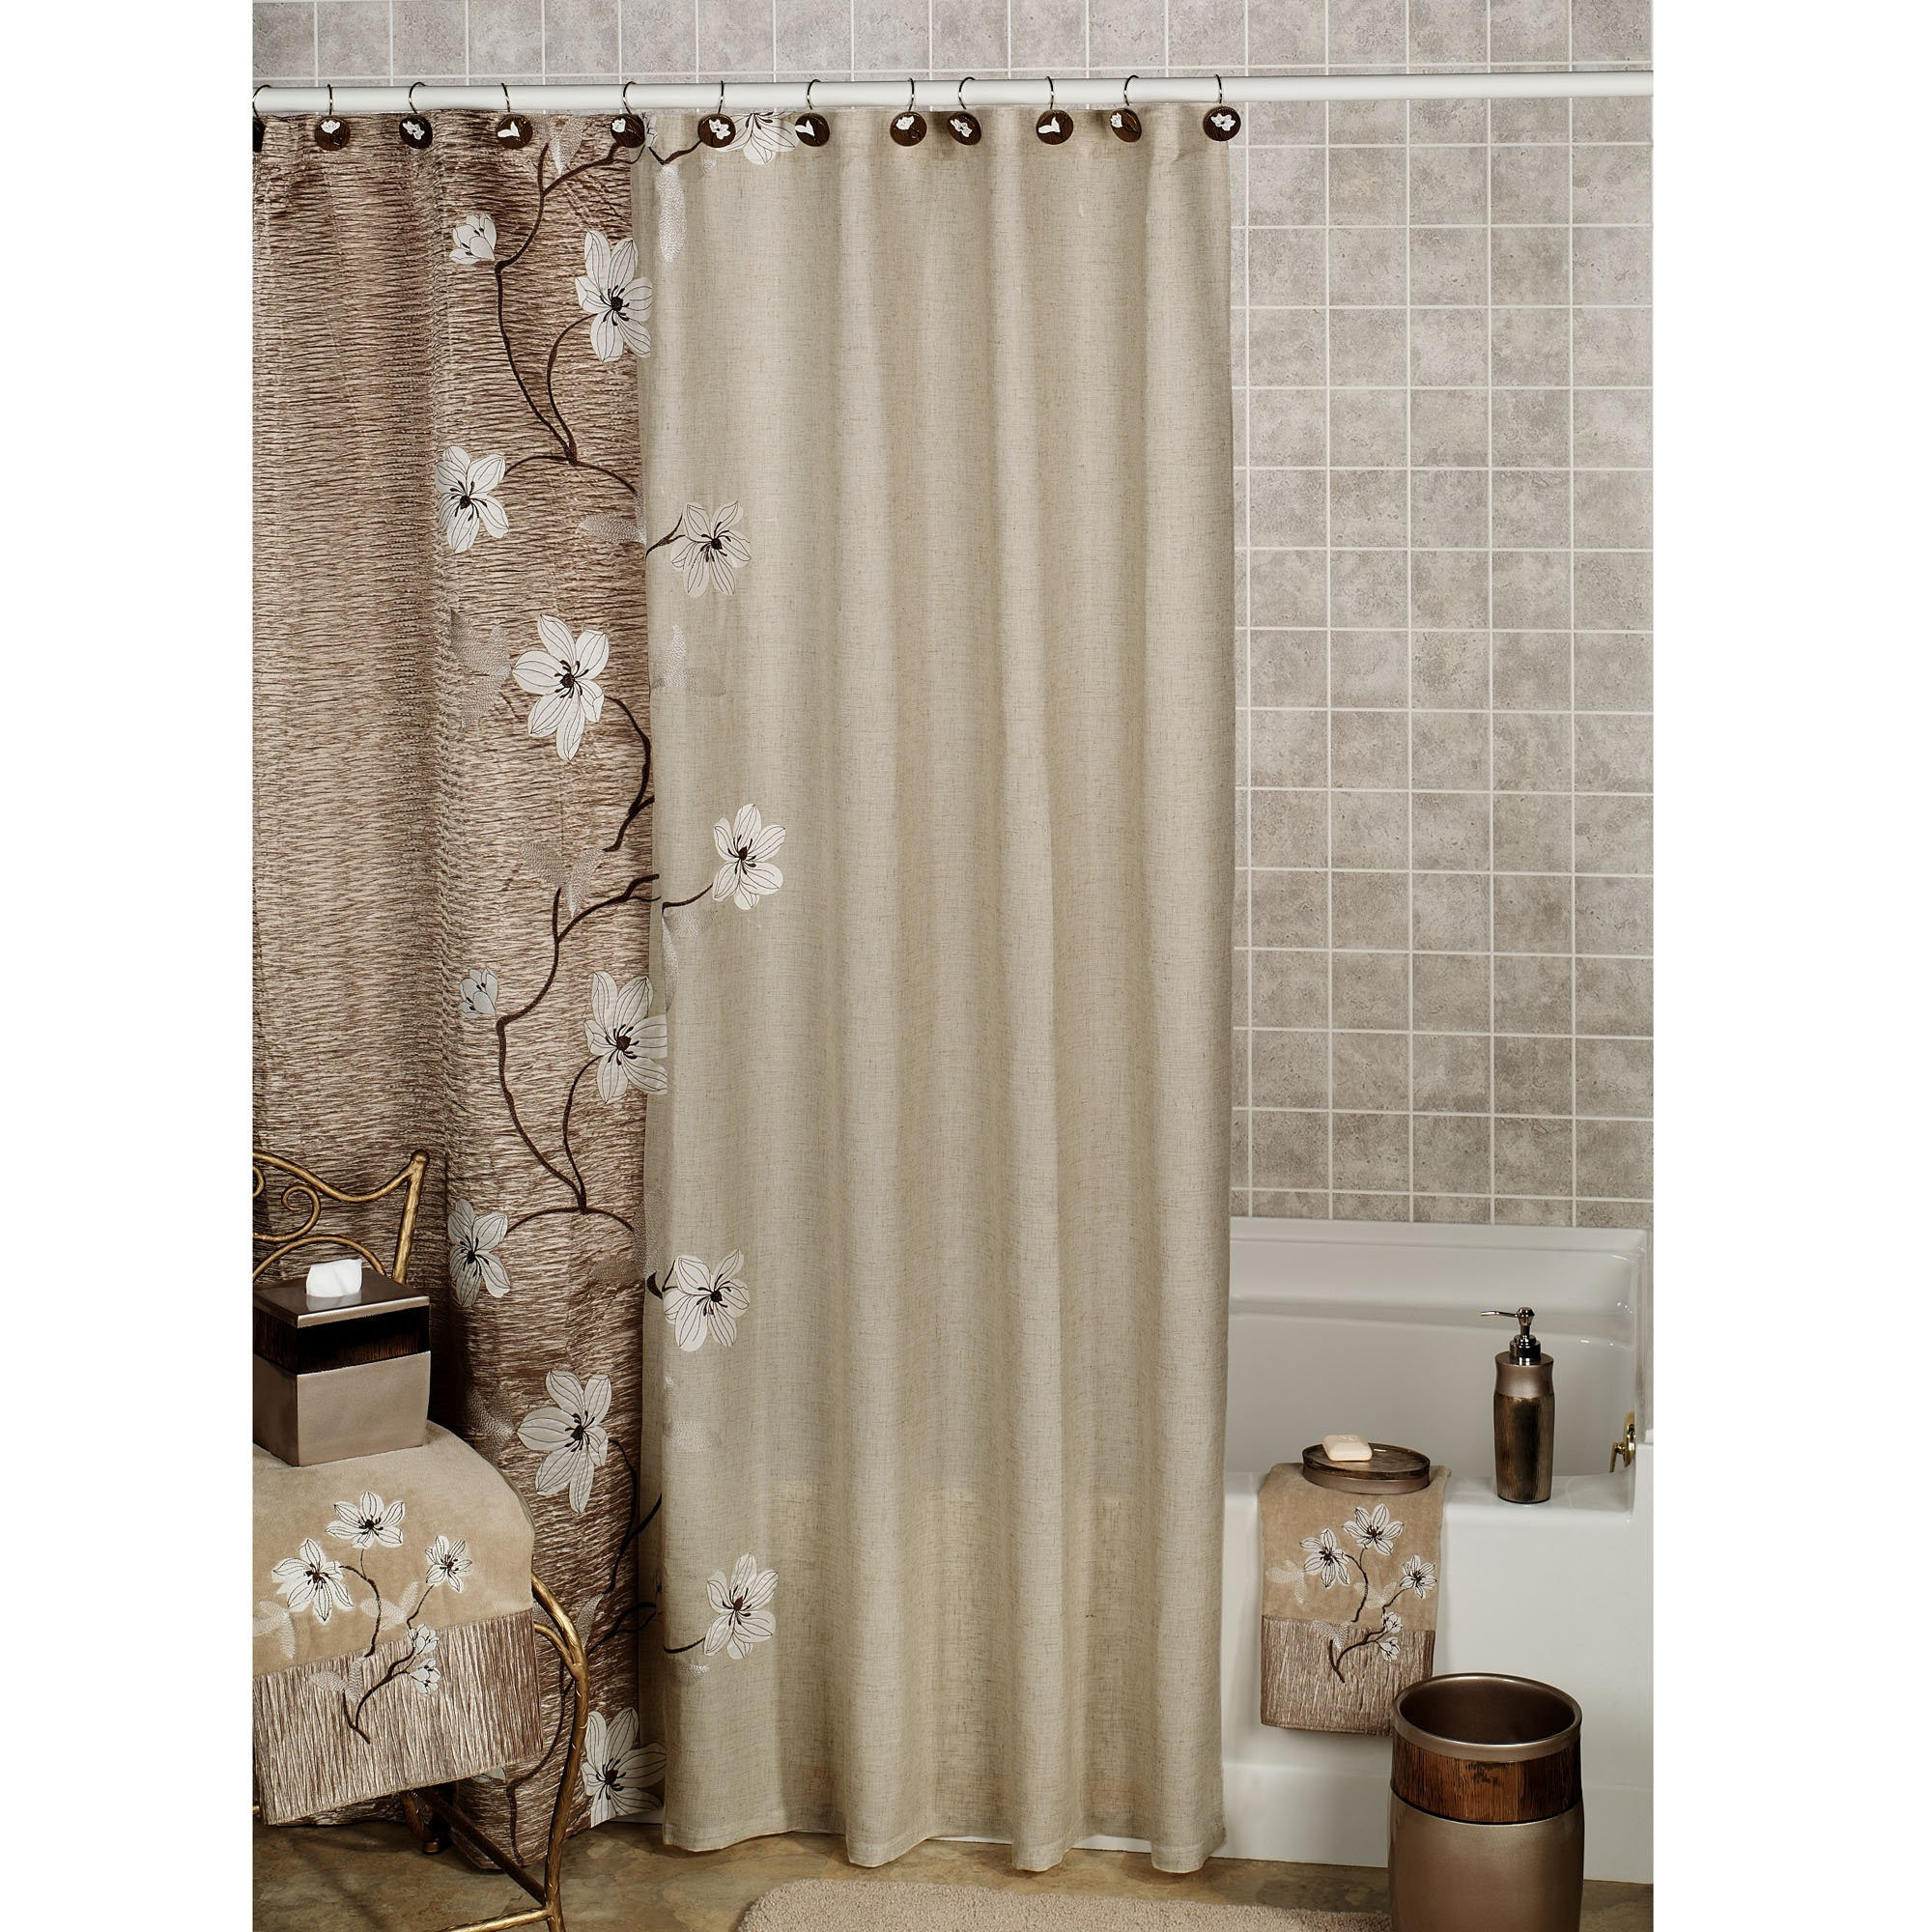 Shower Curtain With Matching Window Valance Curtain Rods And with regard to measurements 2000 X 2000